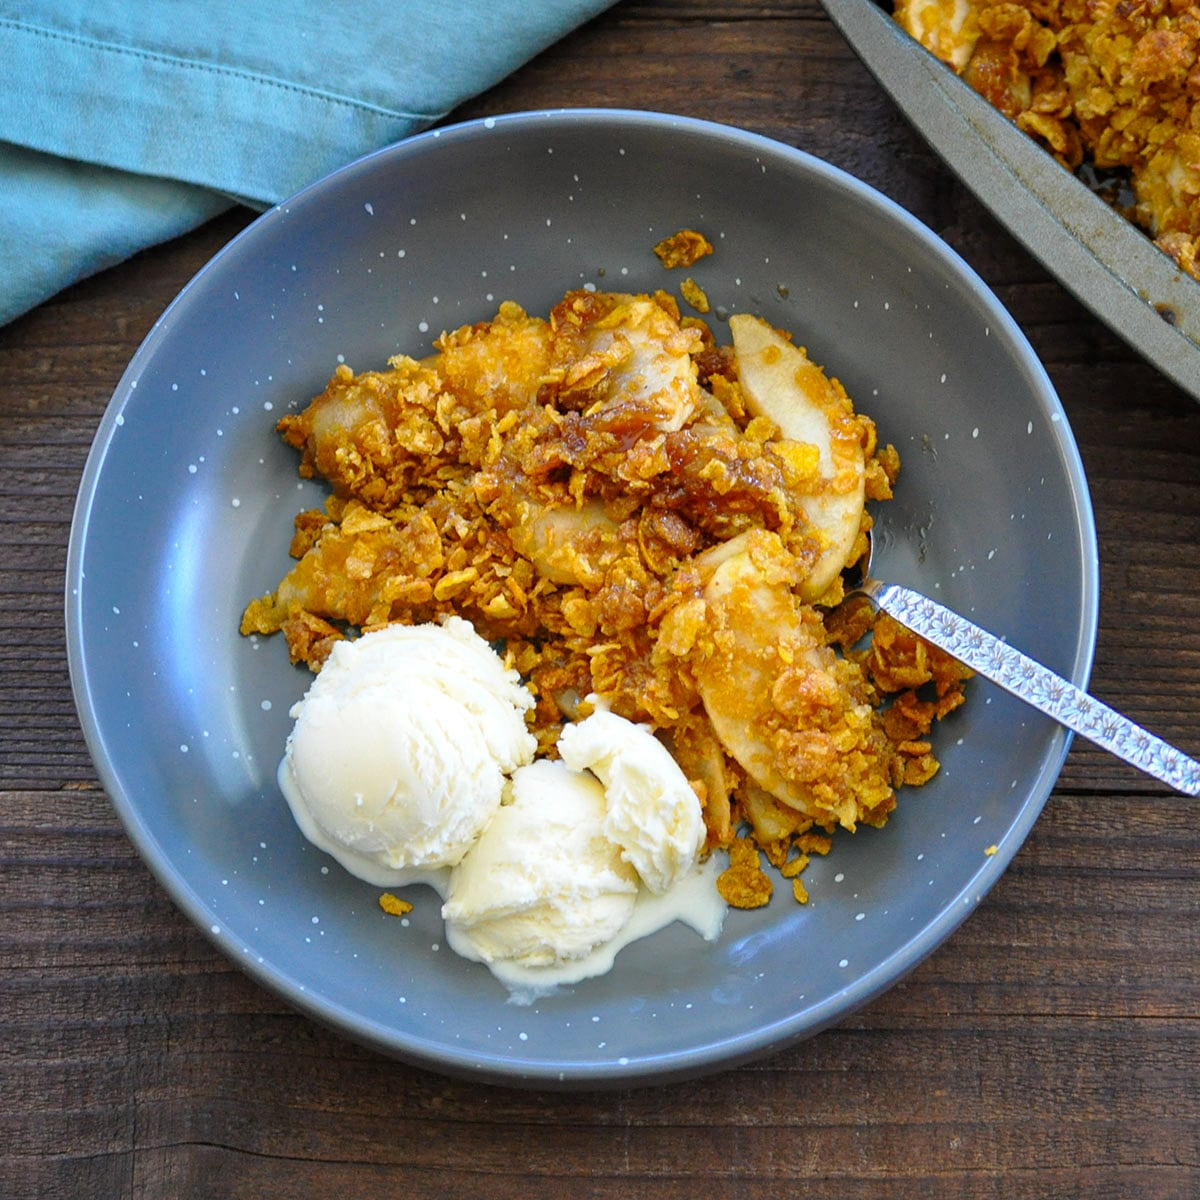 a bowl of apple crisp made with corn flakes and a side of vanilla ice cream